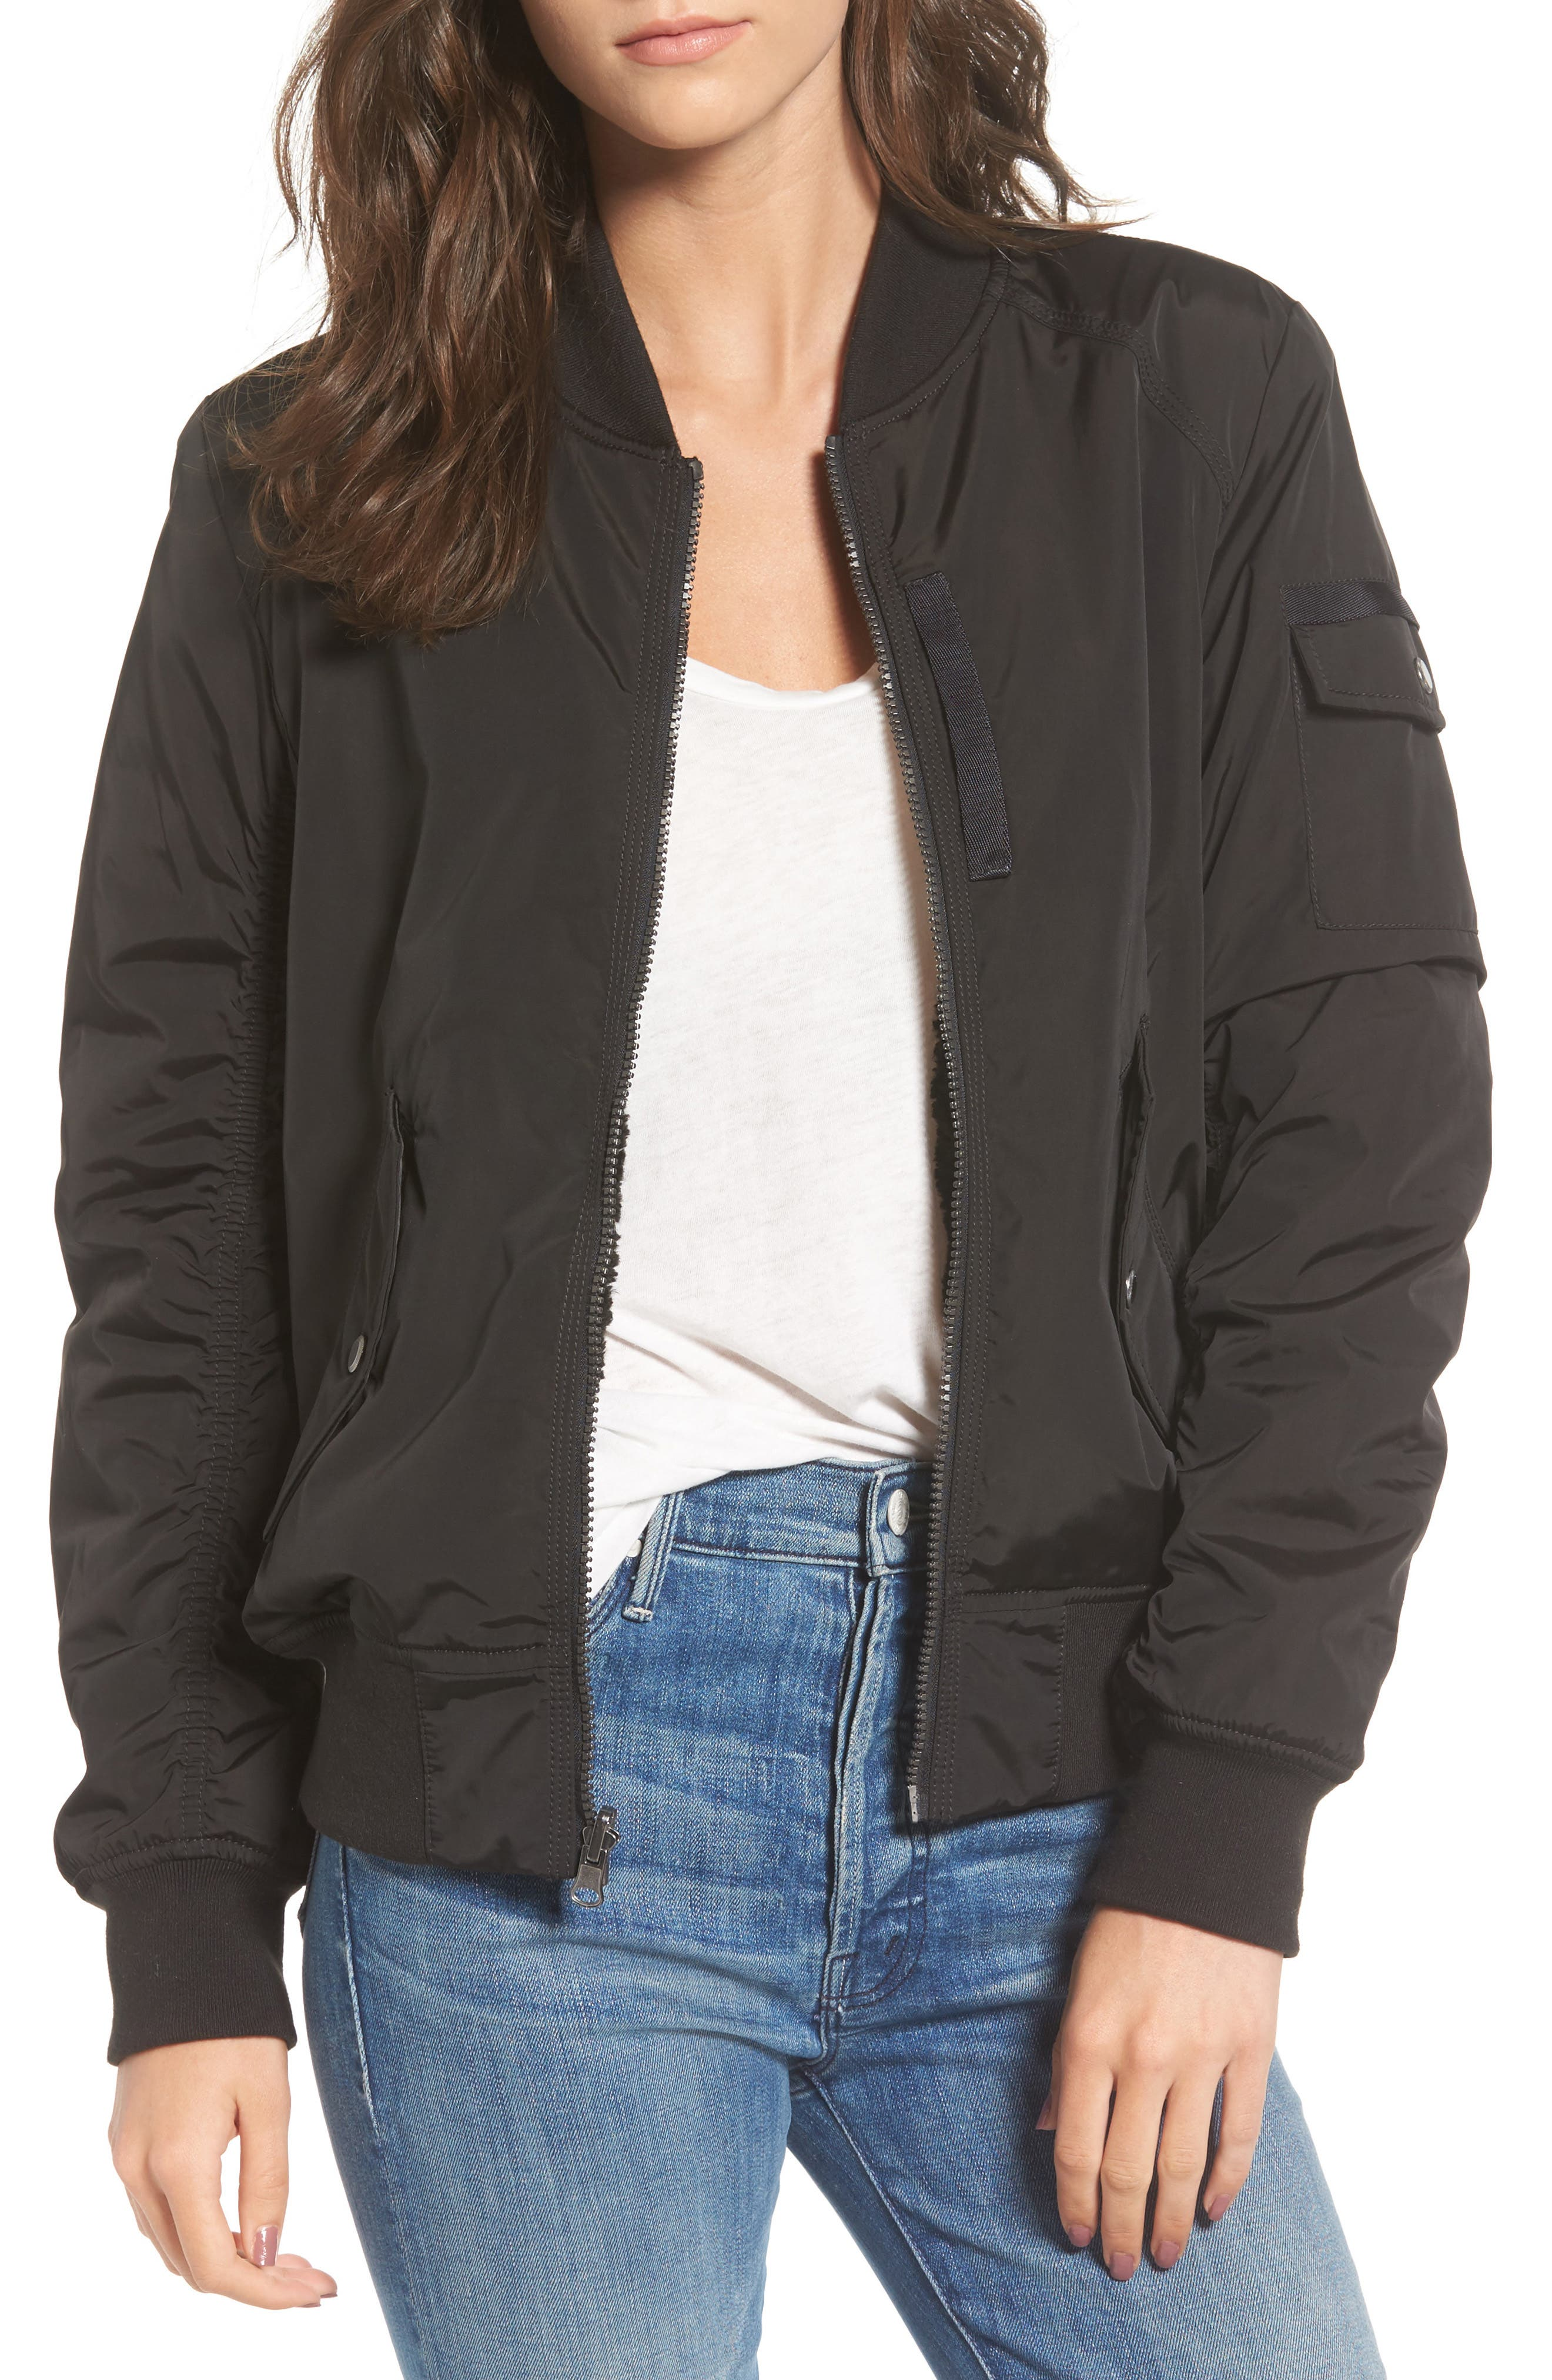 Andrew Marc Nicole Reversible Bomber Jacket,                             Main thumbnail 1, color,                             001